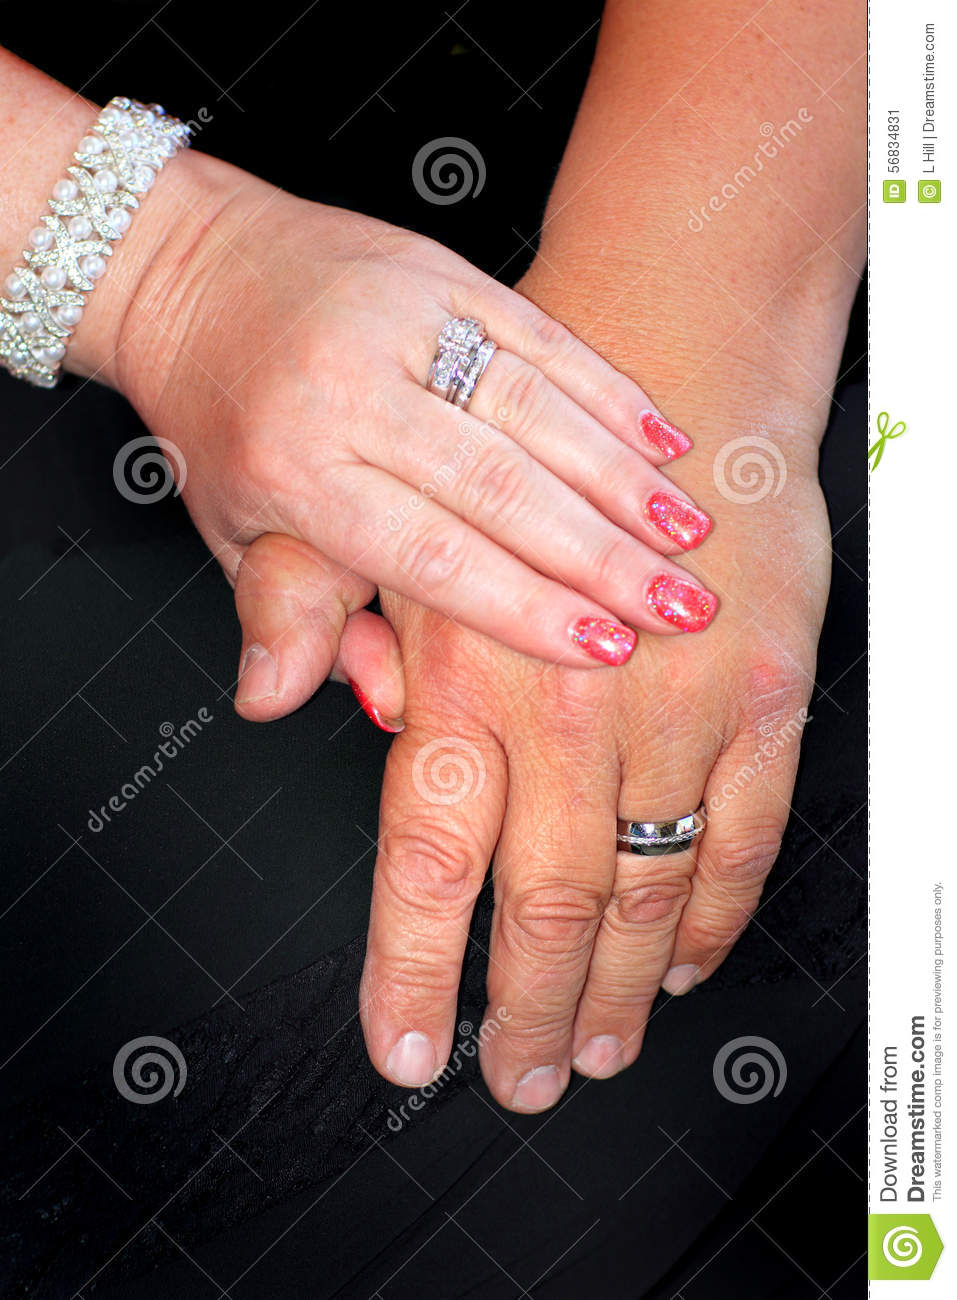 Wedding Promise stock image. Image of celebrating, married - 56834831